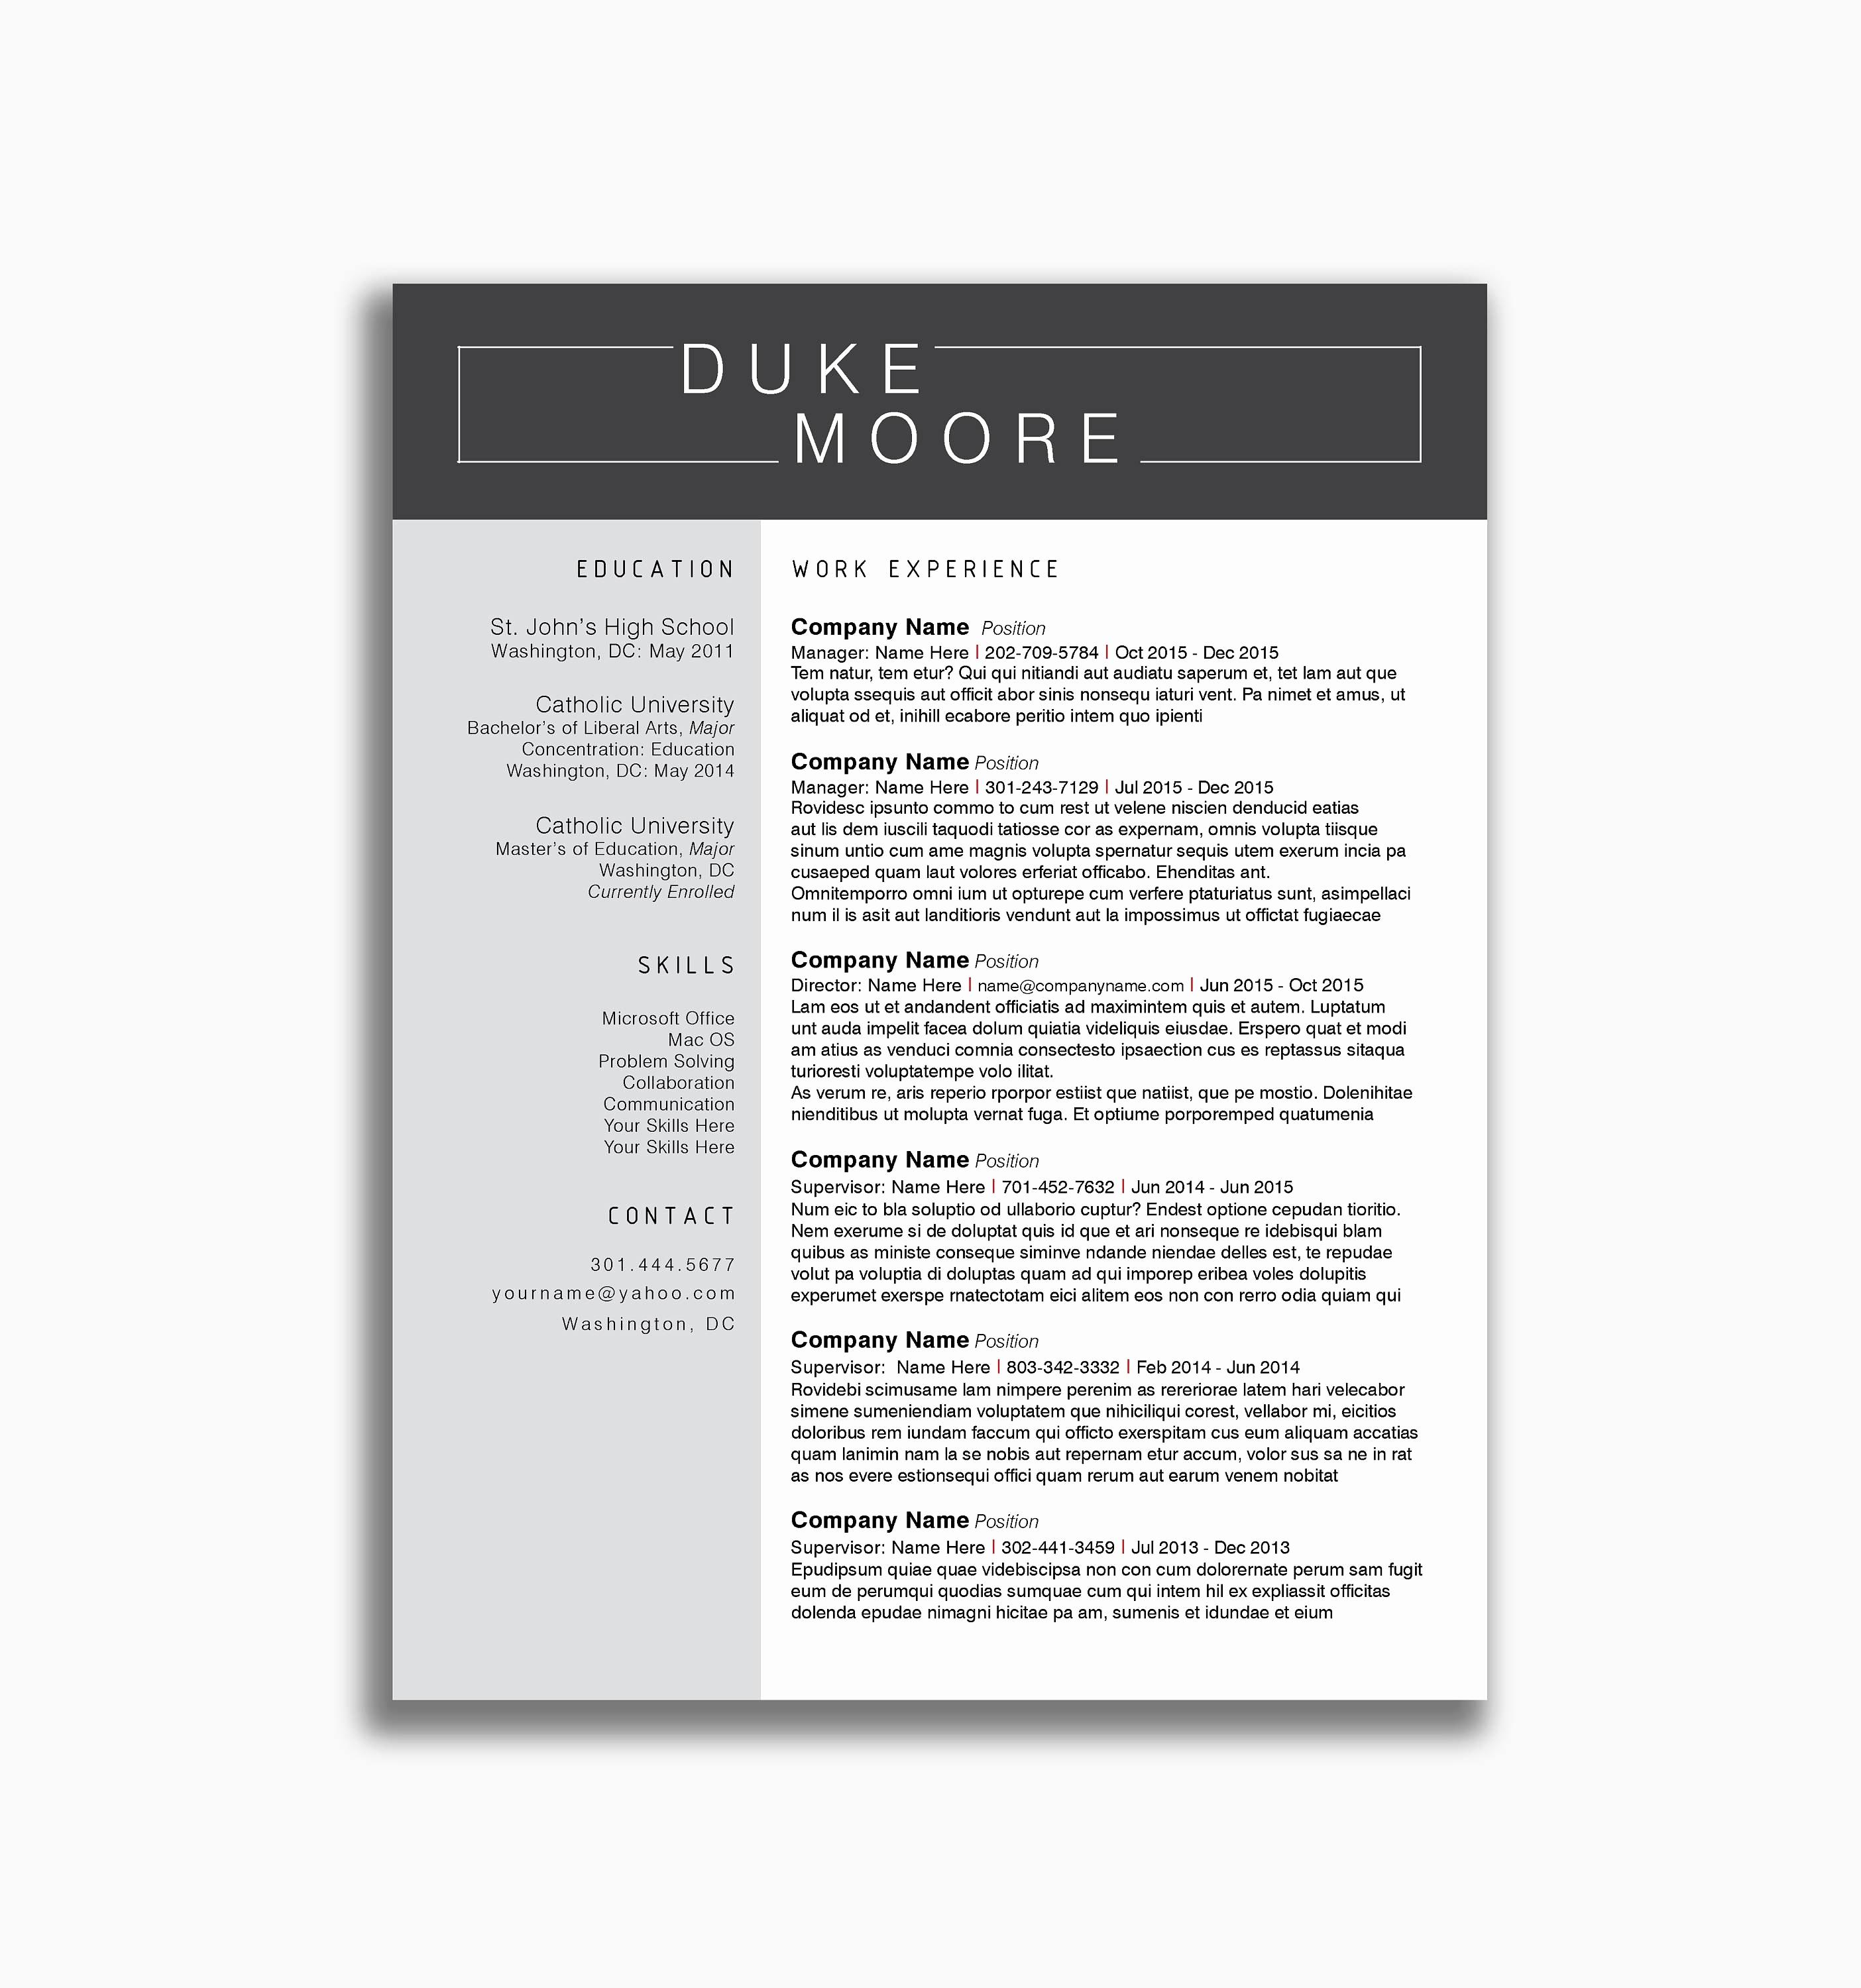 technical-theater-resume-template-12 Technical Theatre Resume Format on examples functional, sample hybrid, templates samples, templates for fresh graduate, for mechanical engineer fresher, blank form, sample comprehensive, examples combination,